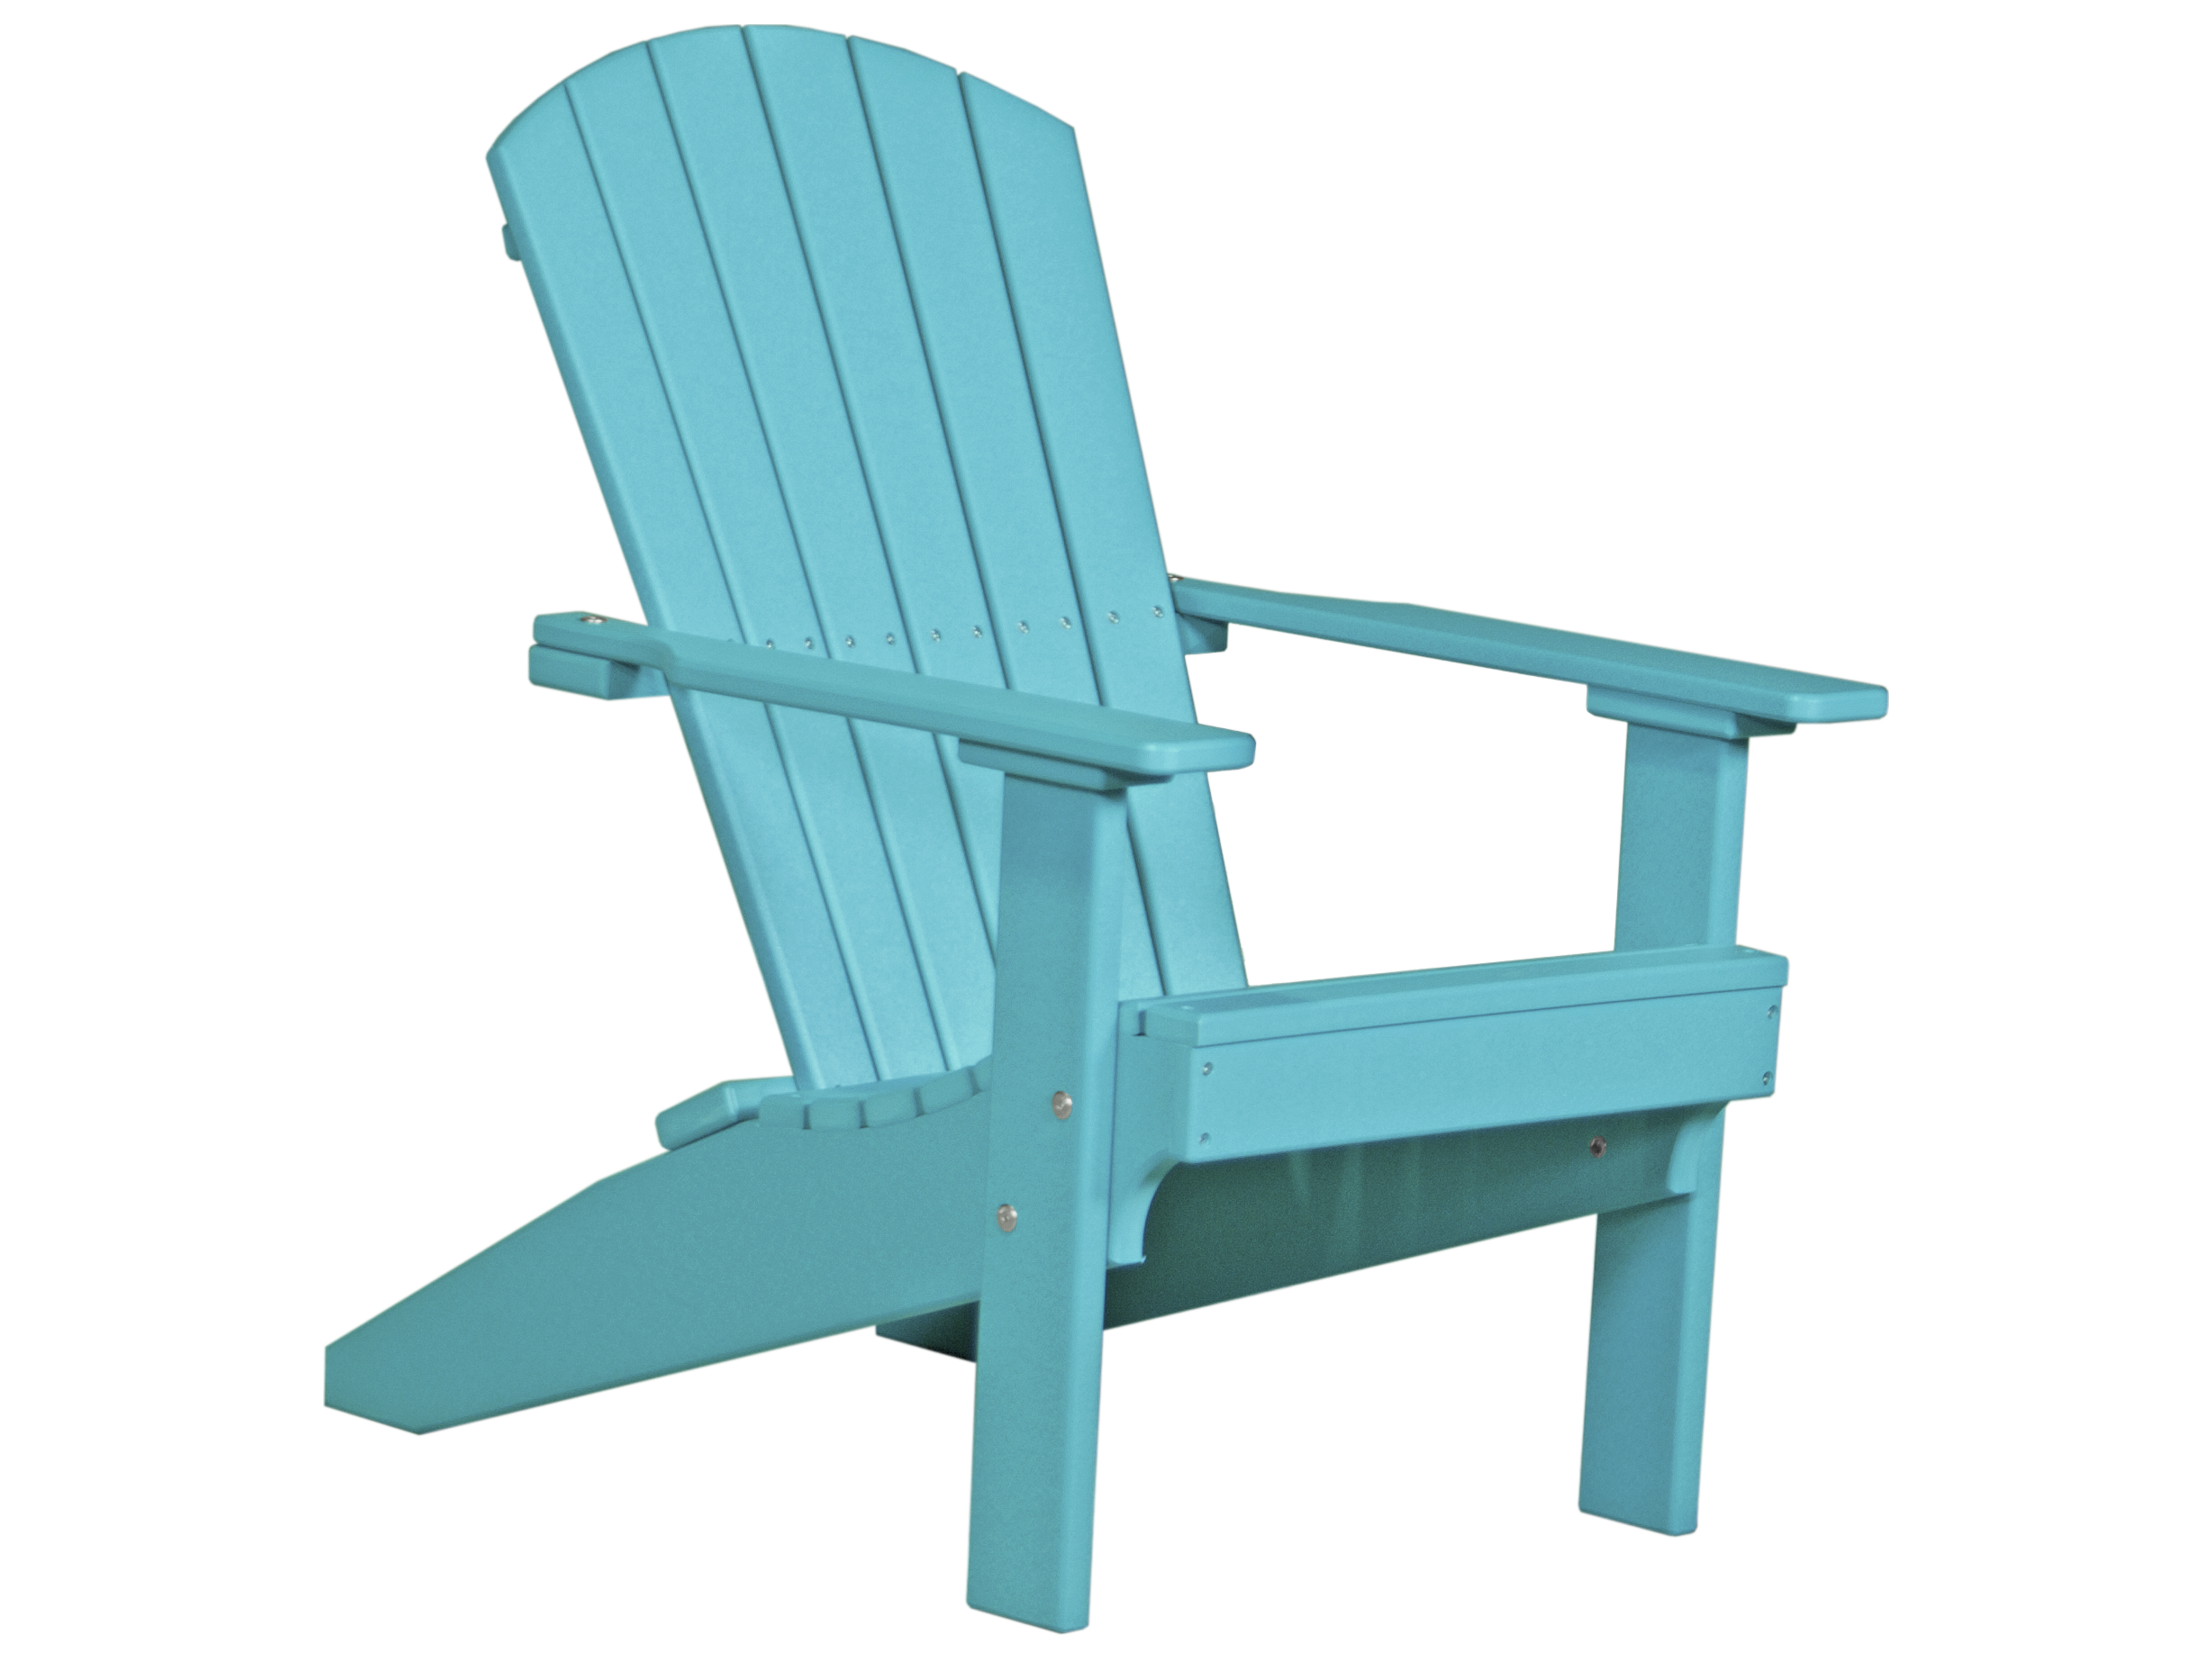 Luxcraft recycled plastic lounge set luxlaclngset1 - Chaise adirondack plastique recycle costco ...